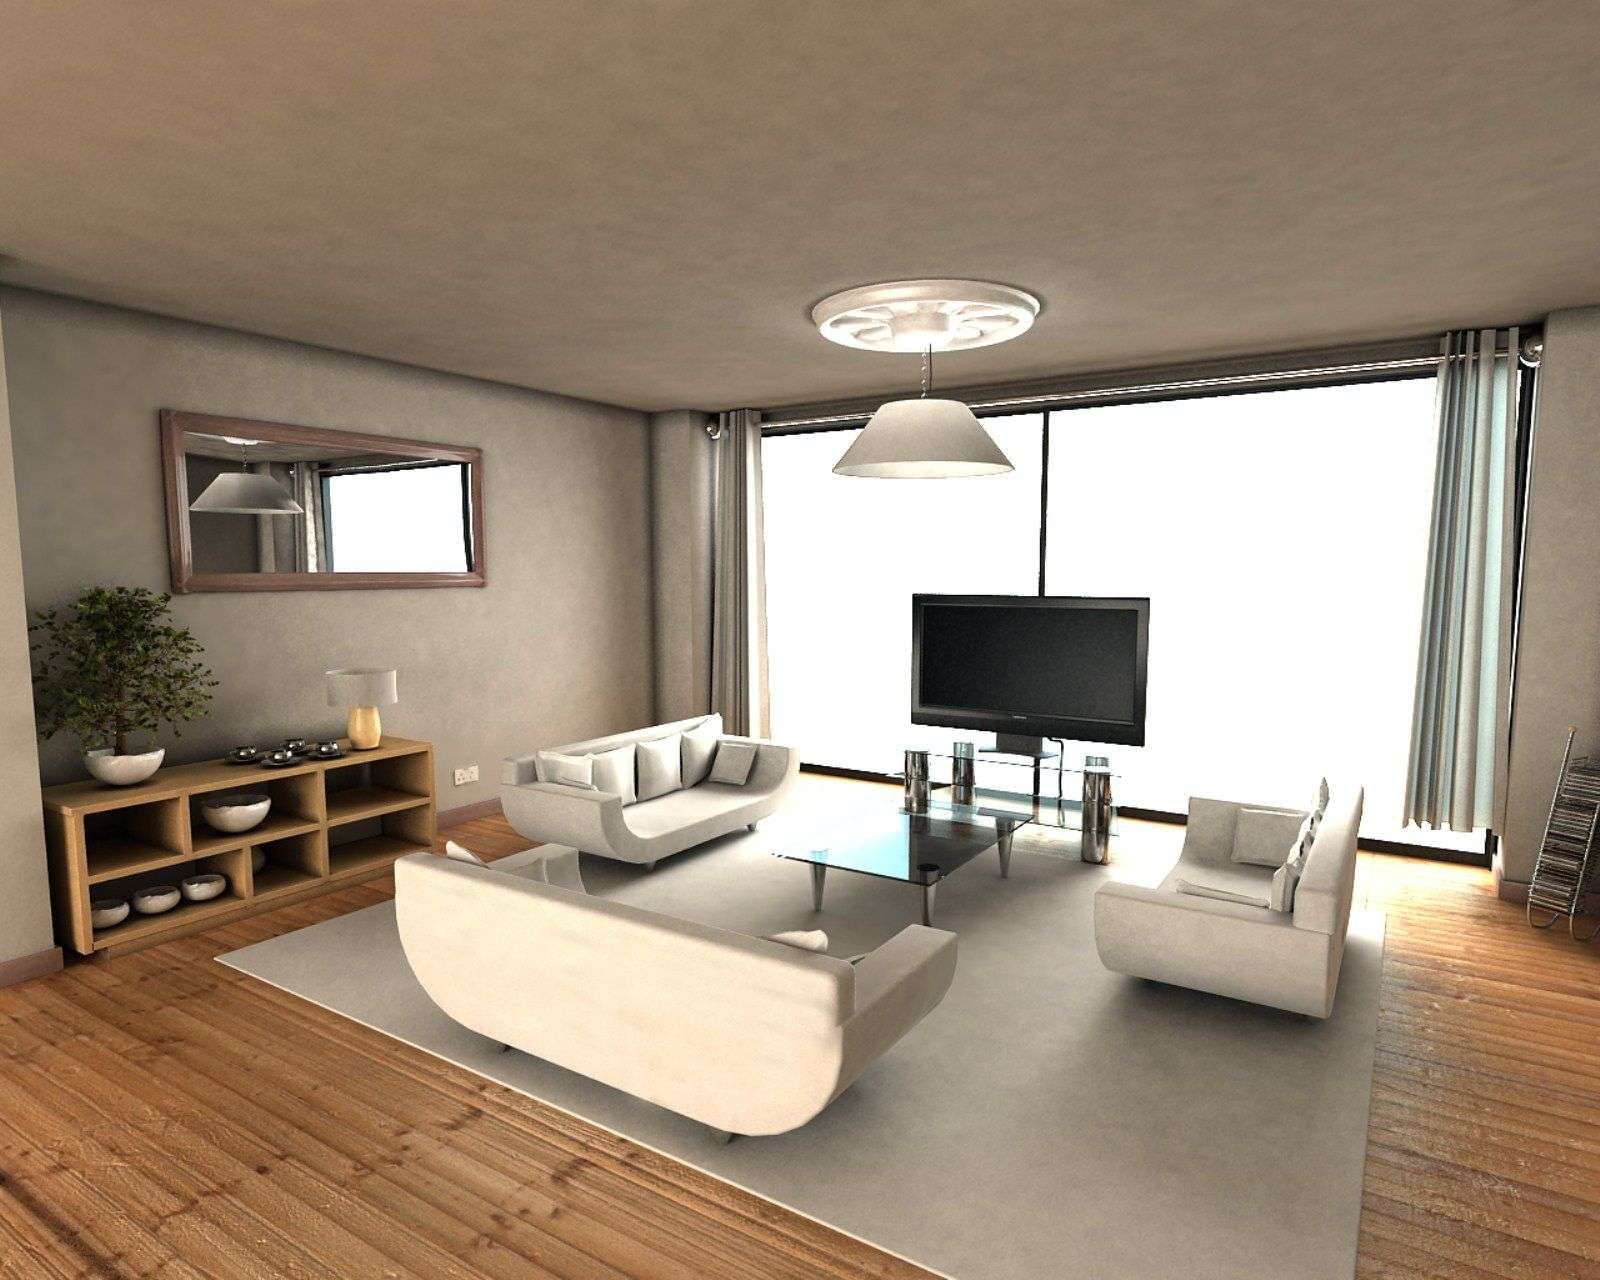 Favorite Coffee Table And Tv Unit Sets Regarding Coffee Table : Awesome Coffee Table Tv Stand Tv Side Table Round (View 14 of 20)